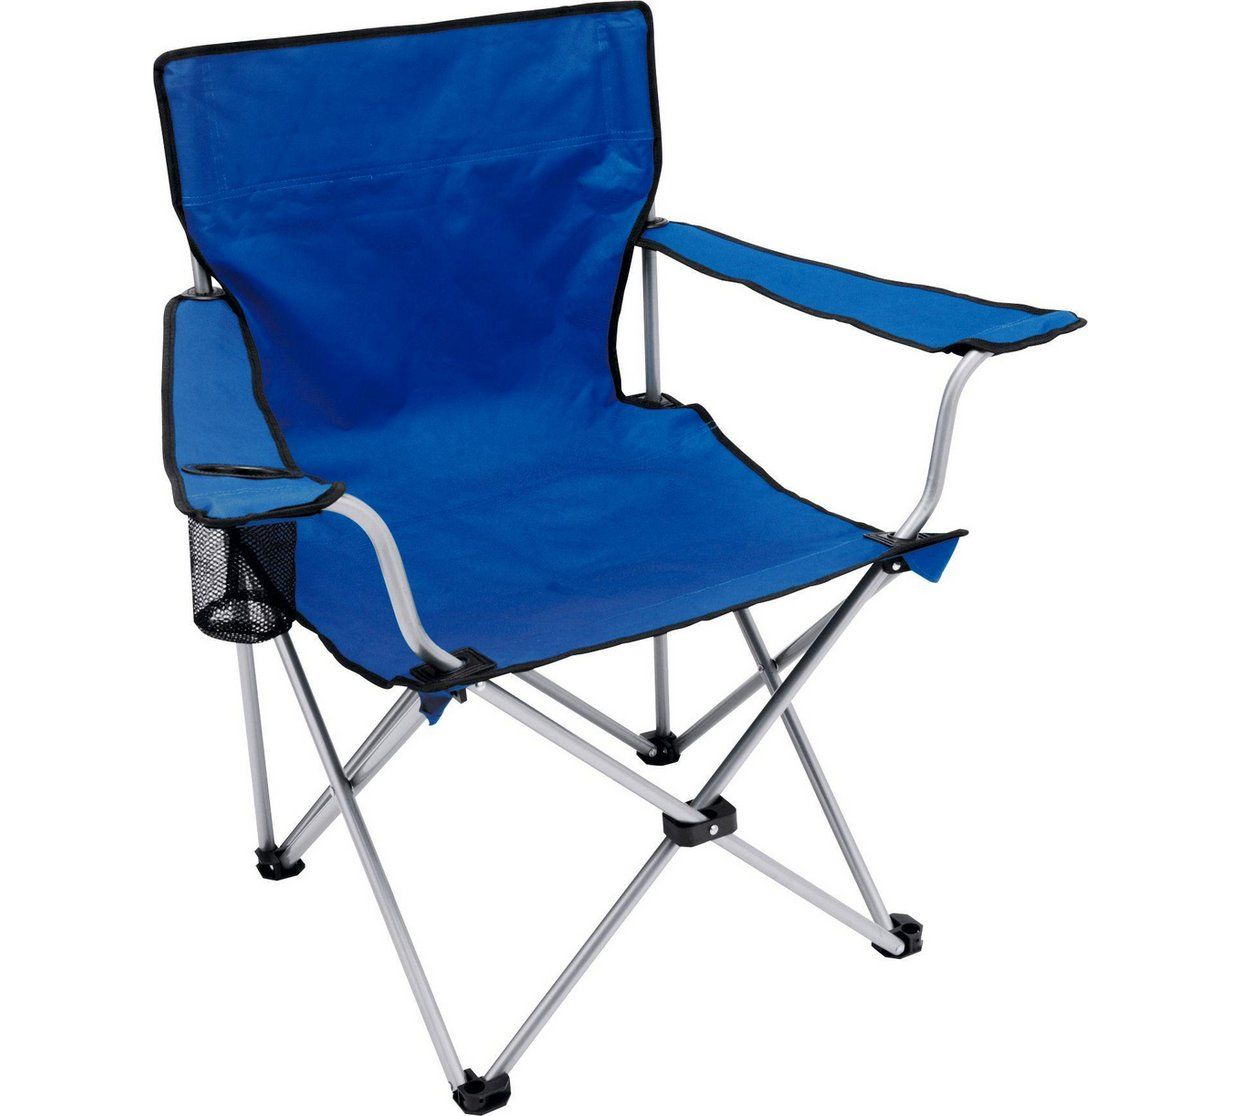 Terrific Buy Steel Folding Camping Chair Camping Chairs Argos Lamtechconsult Wood Chair Design Ideas Lamtechconsultcom